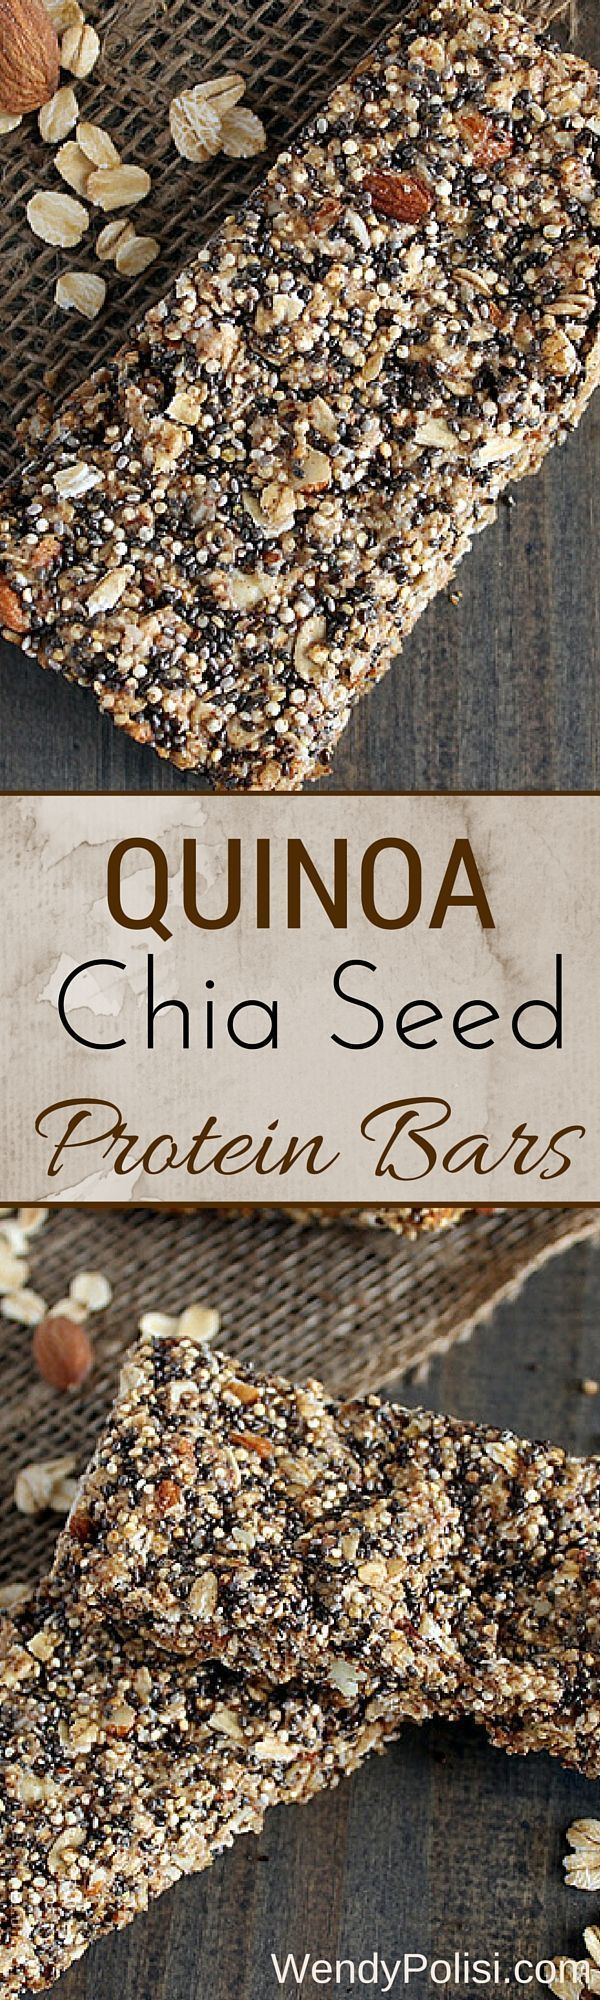 Quinoa Chia Seed Protein Bars that come together quickly and are cheaper than store boughten! Healthy kids snack idea!